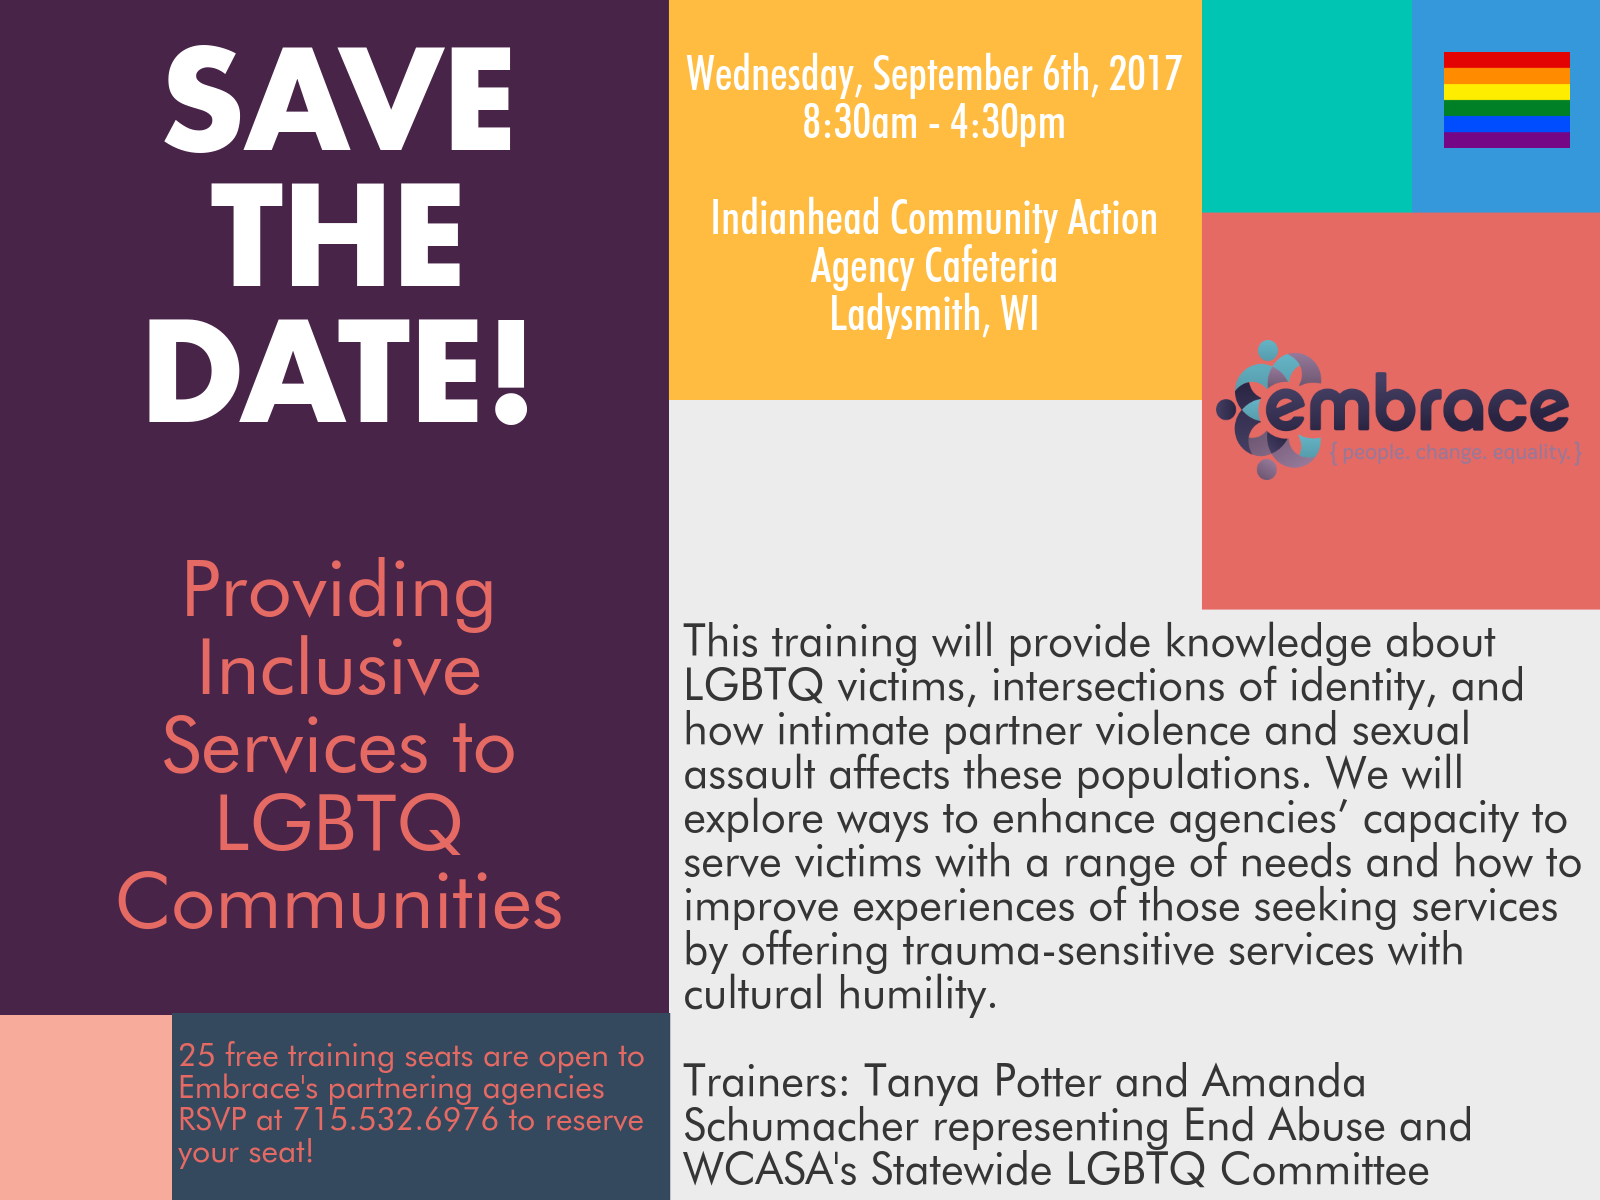 LGBTQ Training Save the Date